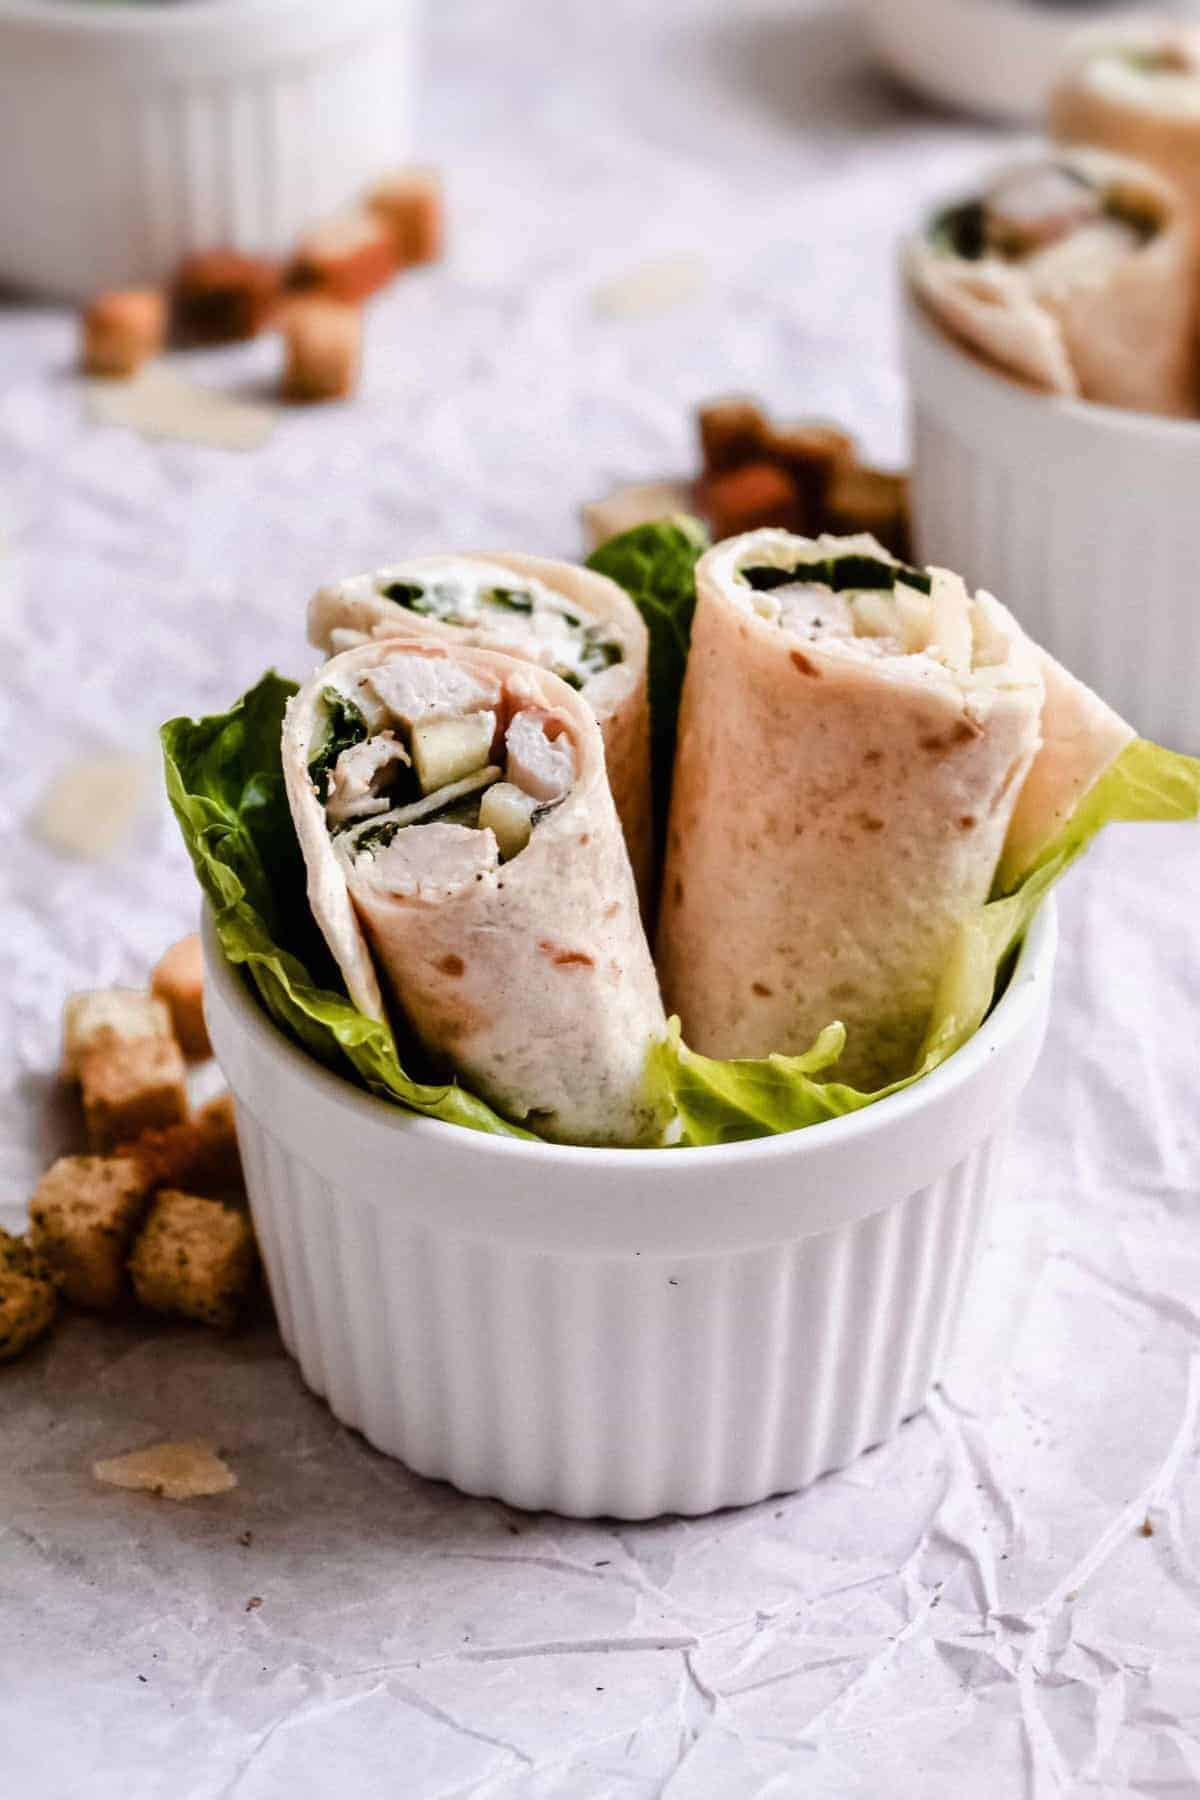 Chicken Caesar Salad wraps served with a lettuce leaf in a ramekin